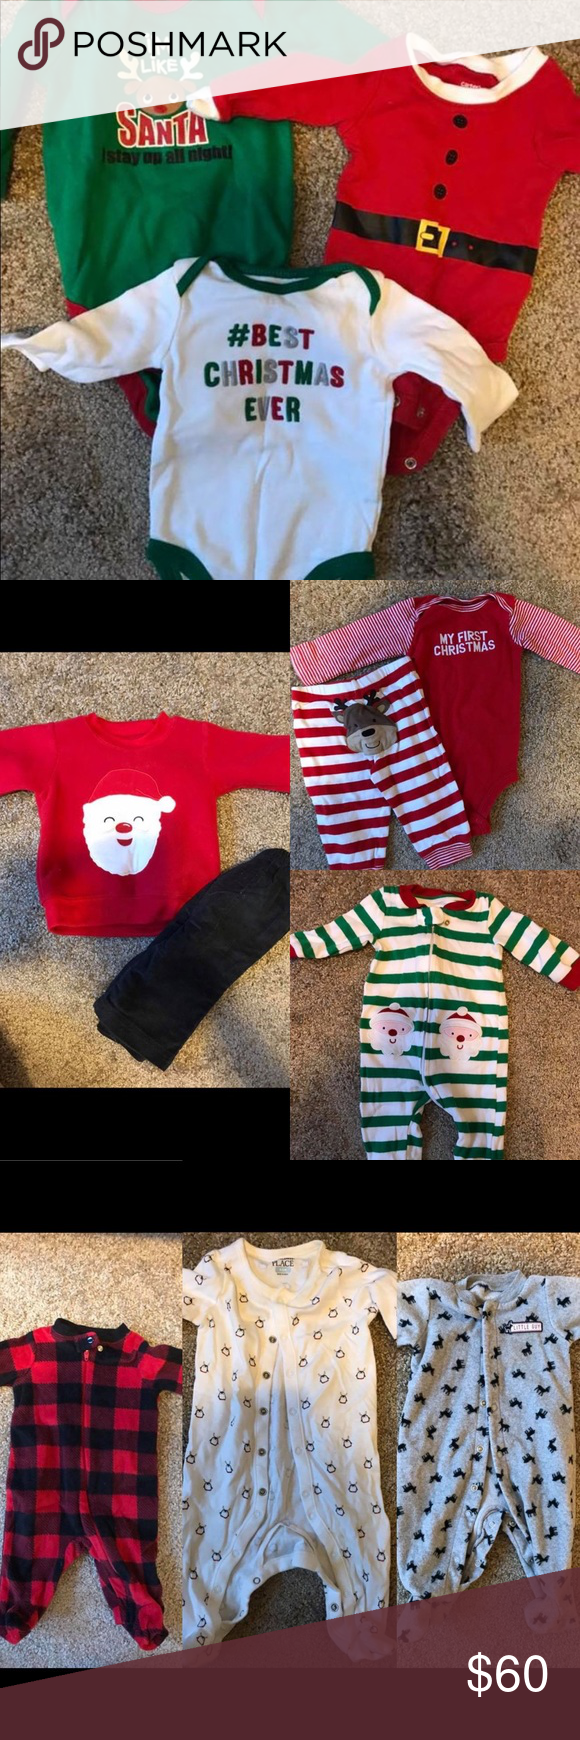 8e23432232ff4 NB and 0-3 month Christmas Lot NWT Mudpie my first Xmas onesie. set